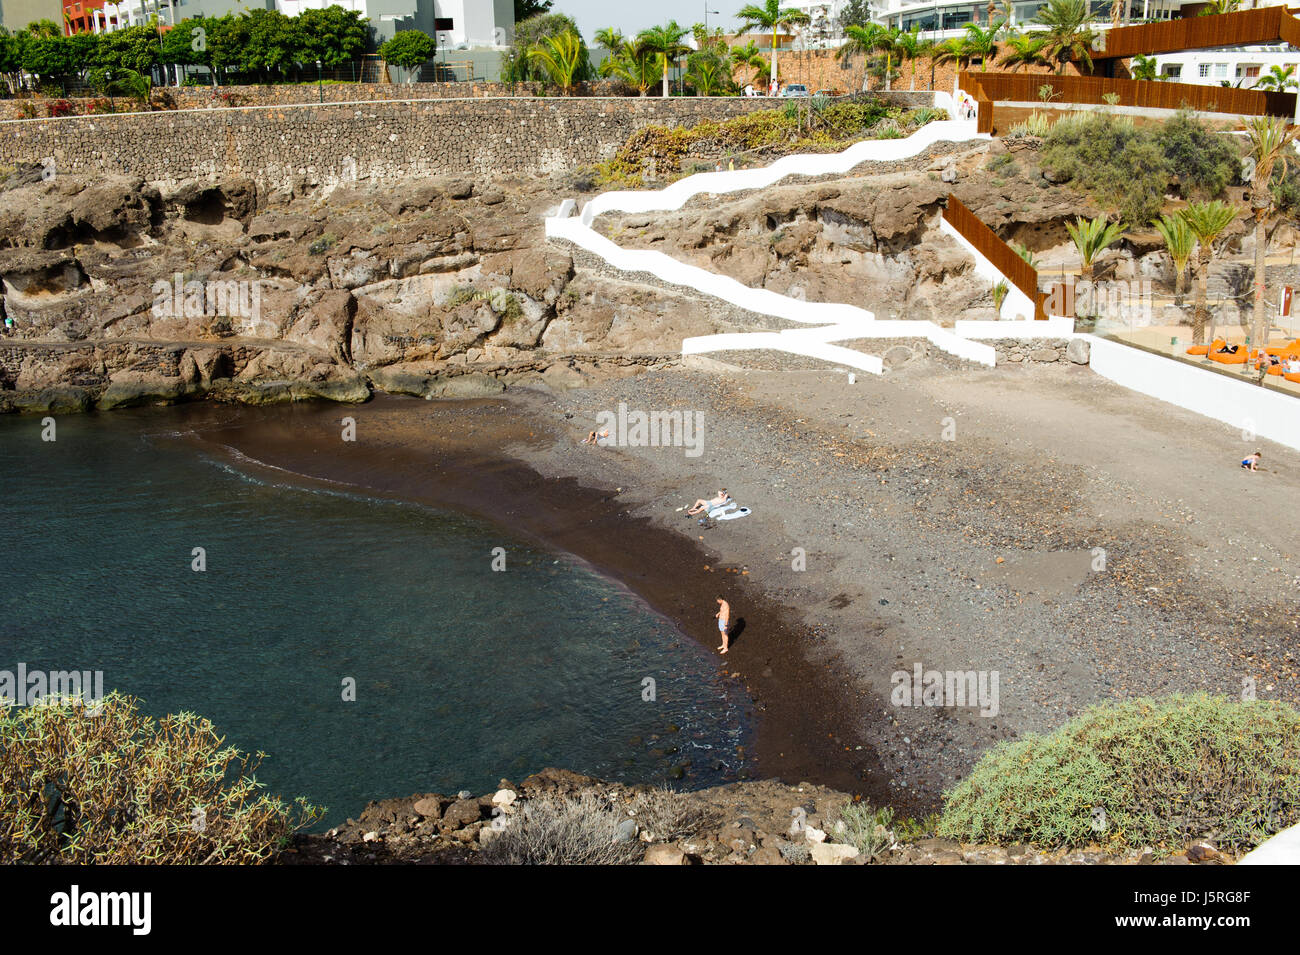 Playa El Pinque Tenerife -25 December, 2016. Beautiful view on Playa El Pinque small public beach in  Tenerife, - Stock Image